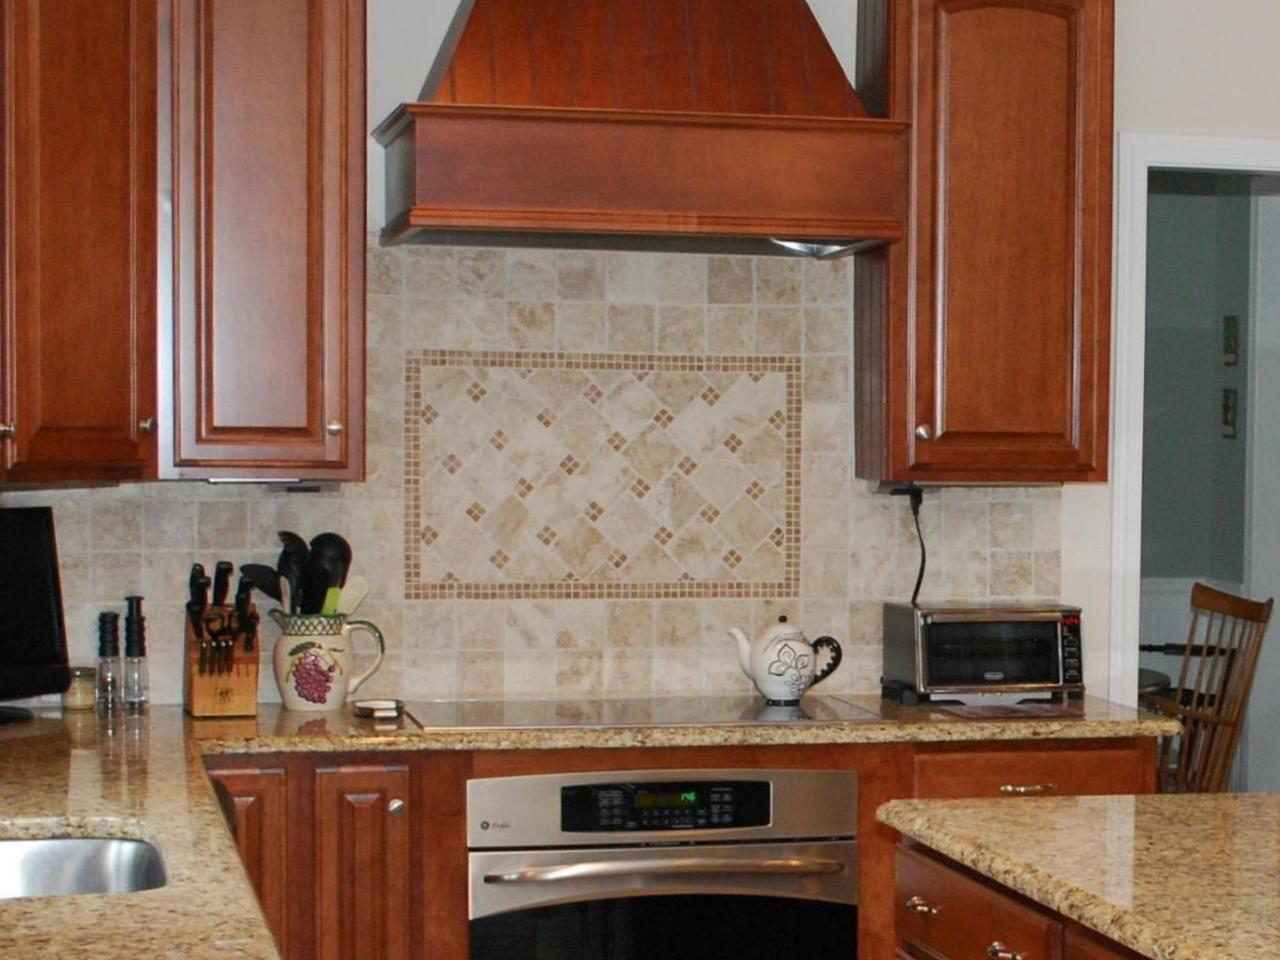 kitchen backsplash material options kitchen backsplash design ideas hgtv 19149